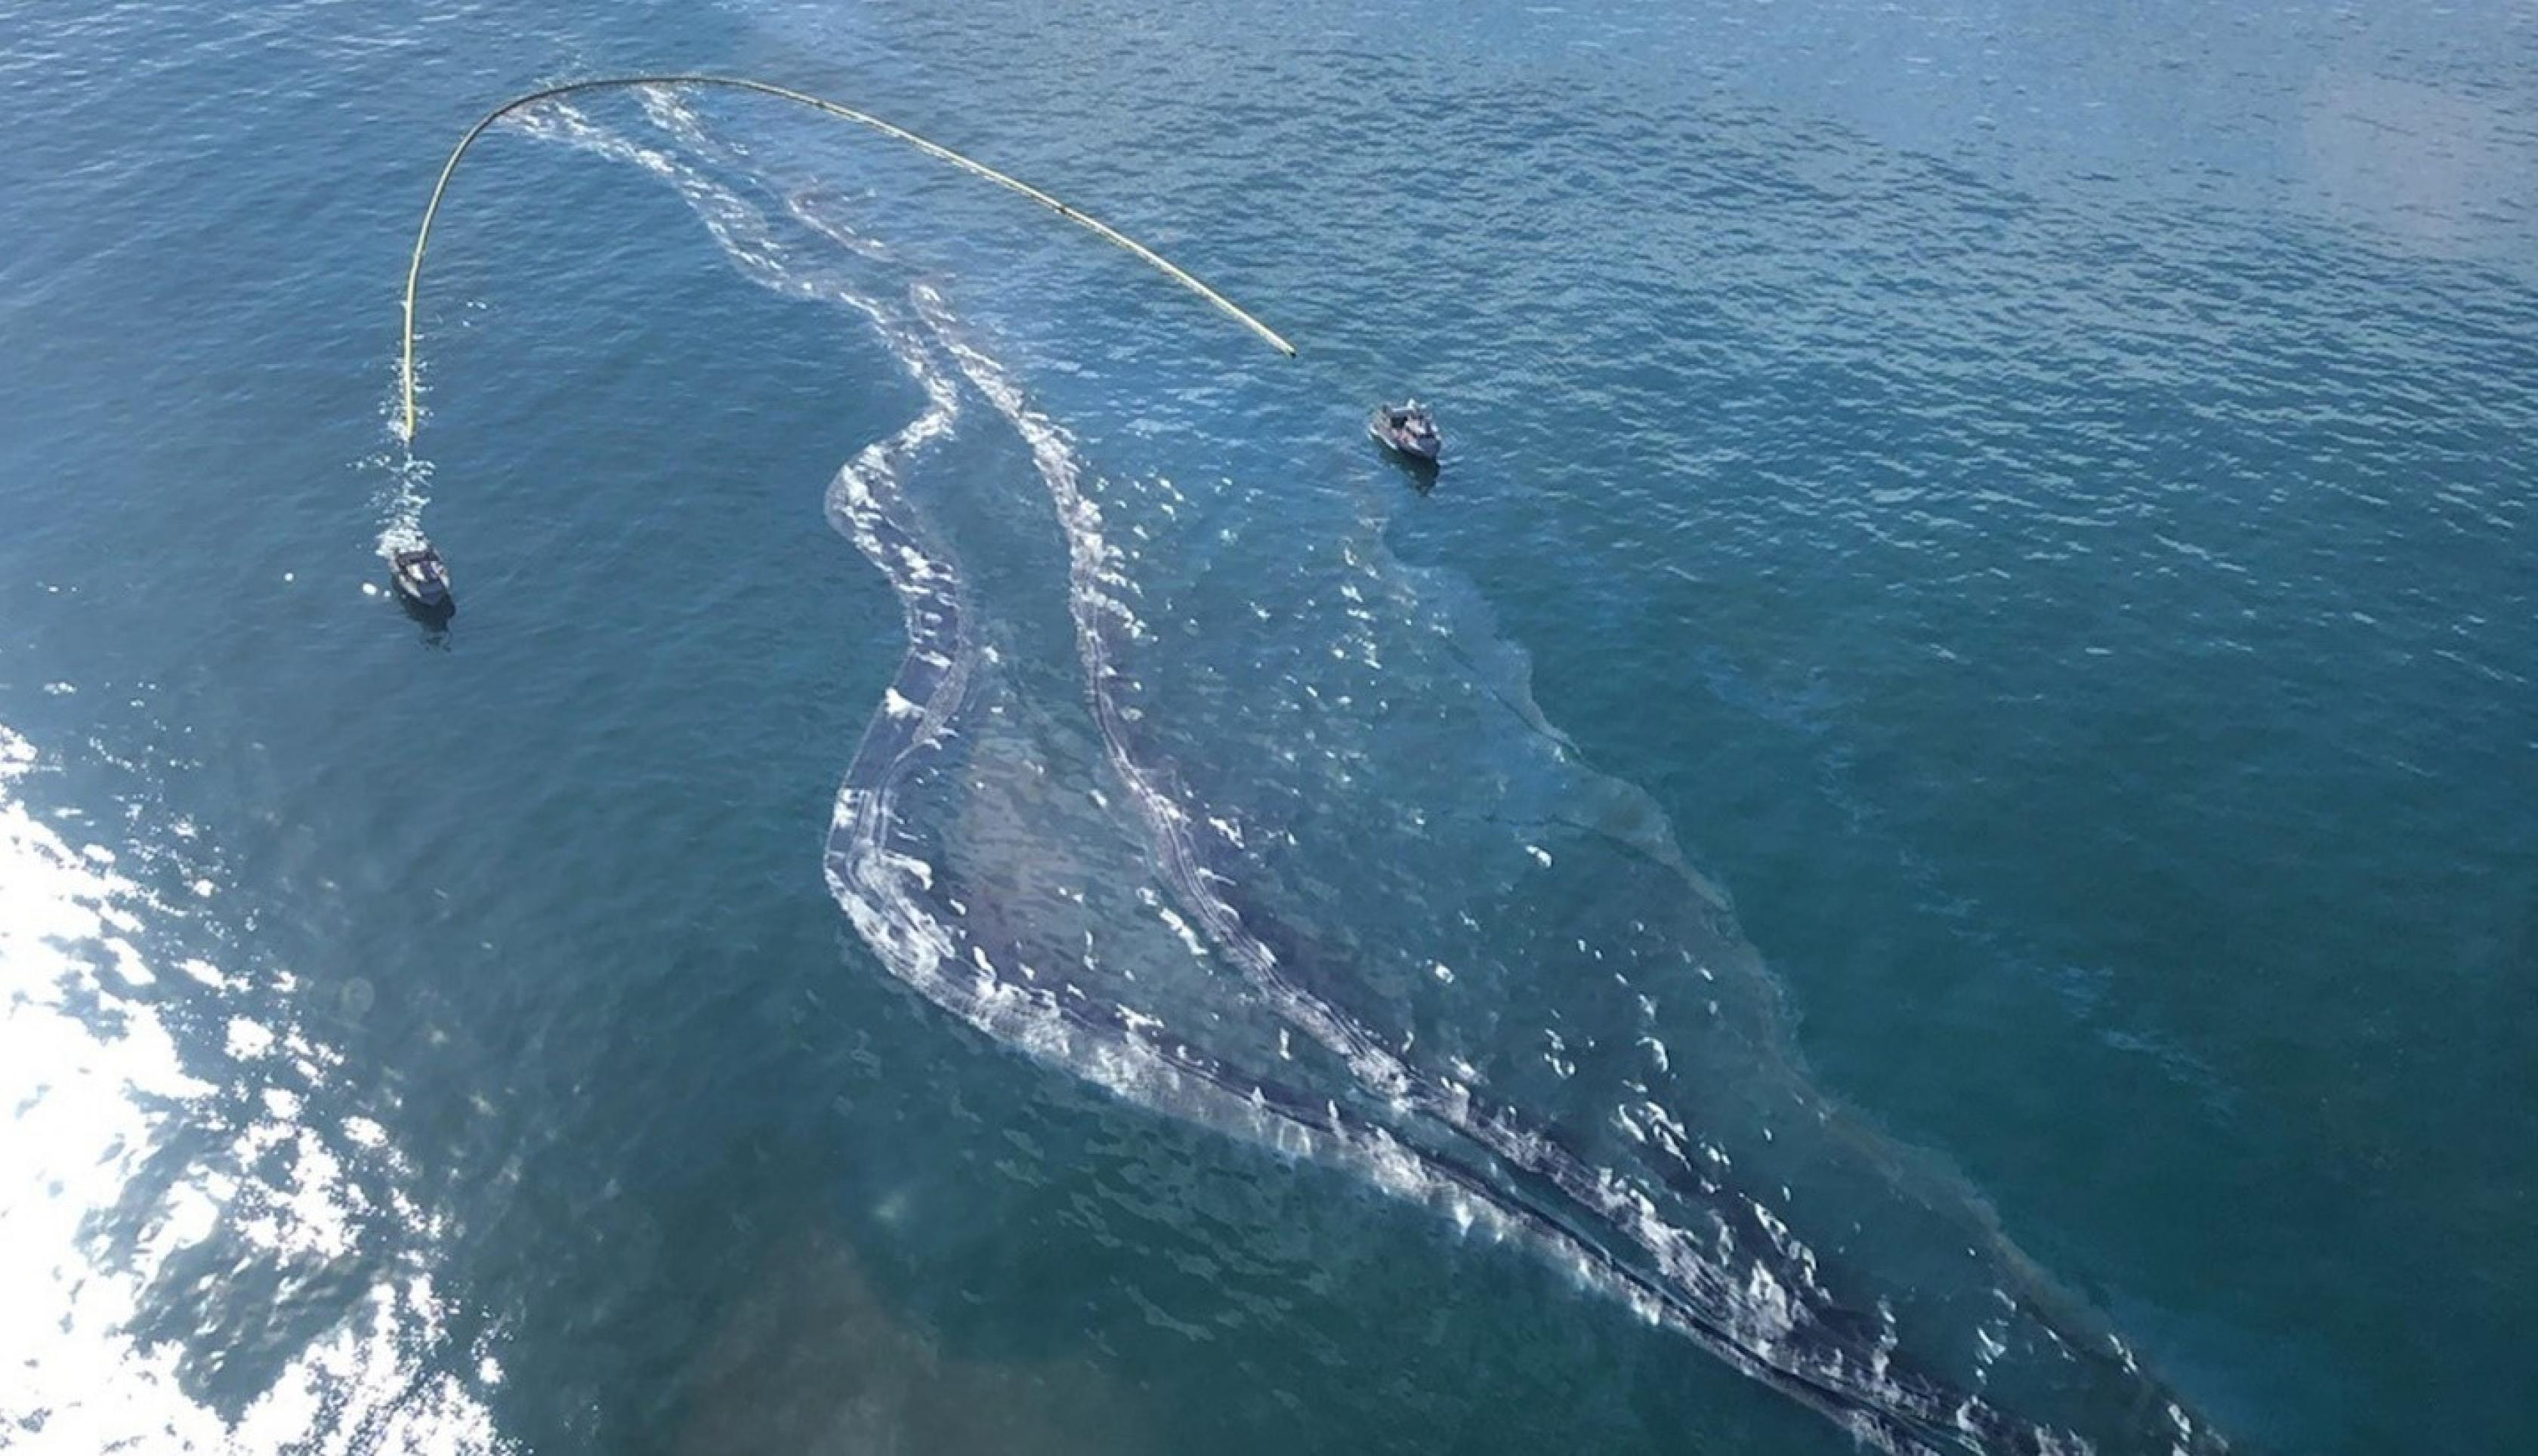 Crude oil is shown in the Pacific Ocean offshore of Orange County, California, Oct. 3, 2021. The Coast Guard said on Oct. 3 that over 5,300 feet of floating barriers, known as booms, had been deployed and that approximately 3,150 gallons of oil had been recovered from the water. Credits: U.S. Coast Guard